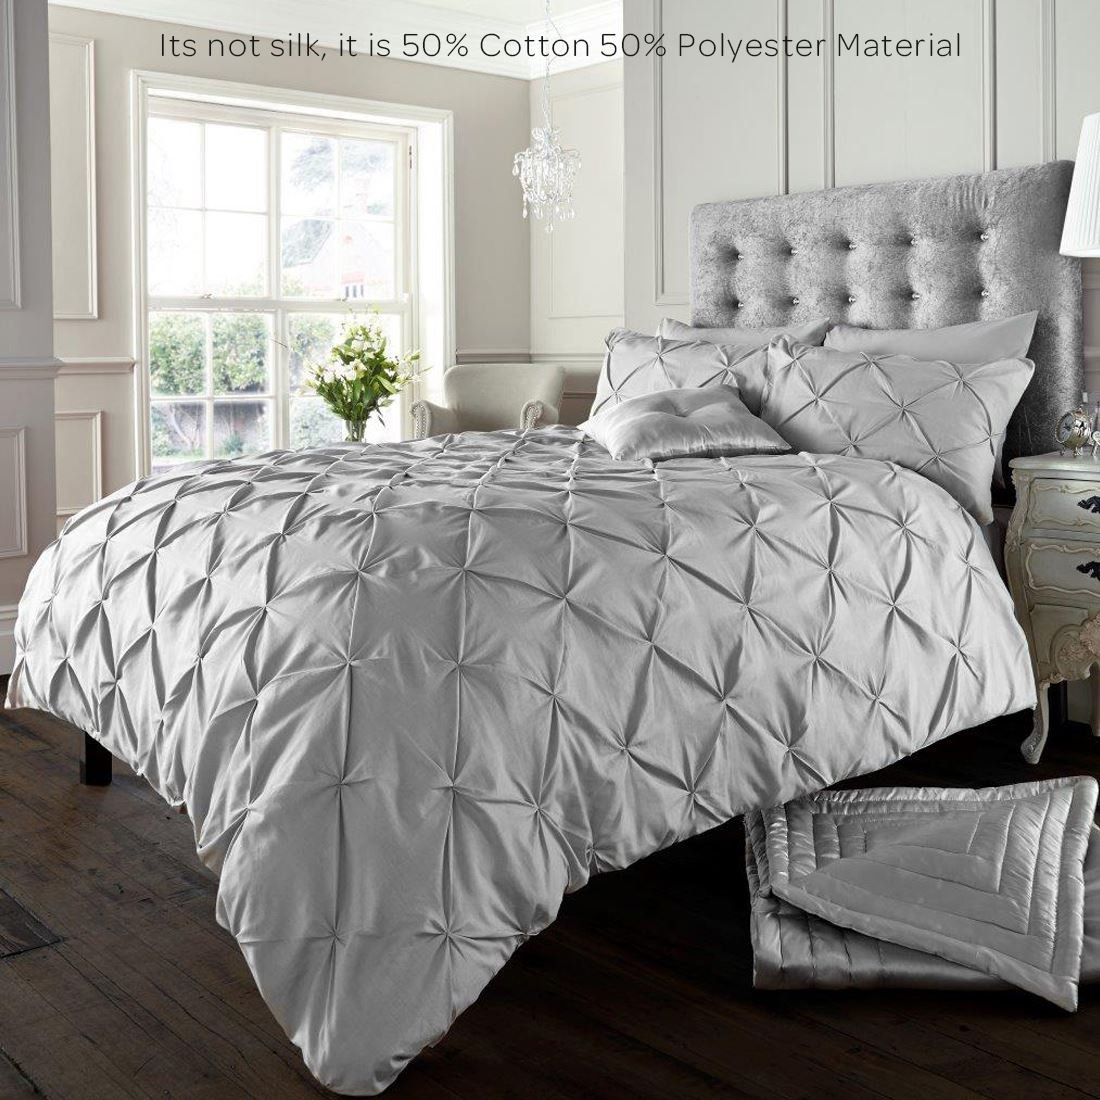 Alford Duvet Cover with Pillowcase Quilt Cover Bedding Set - Soft ...